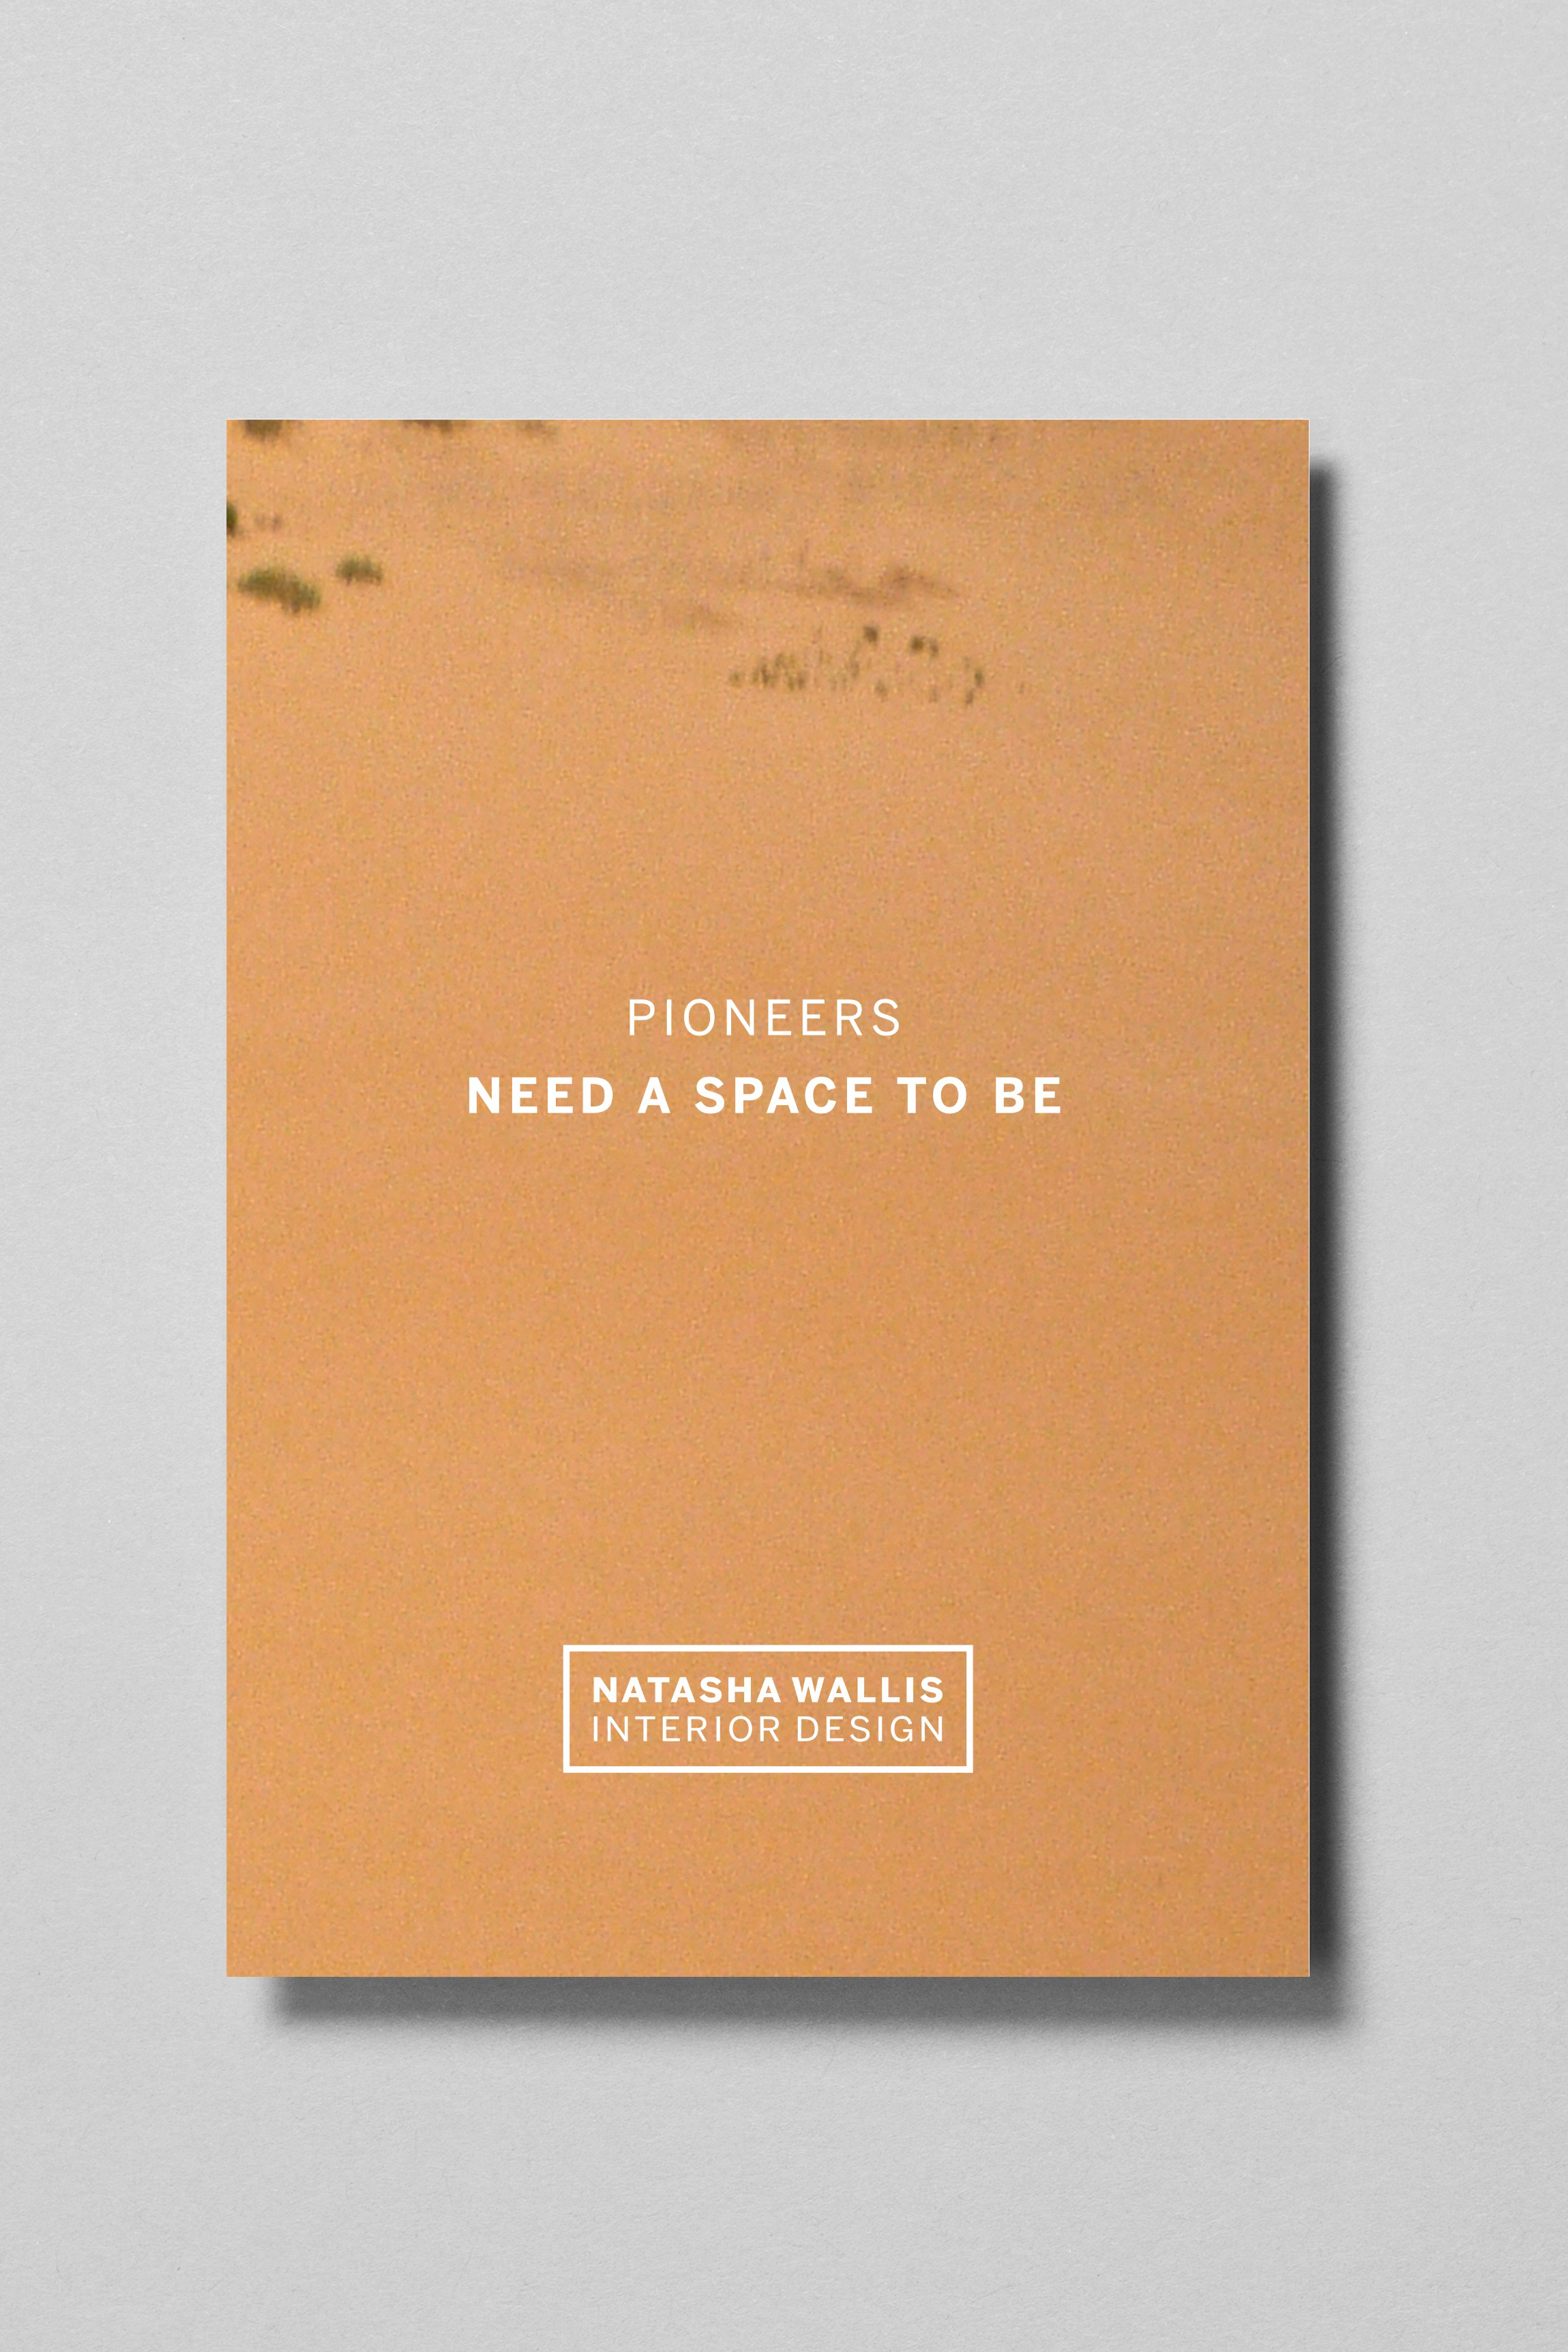 Pioneers need a space to be.